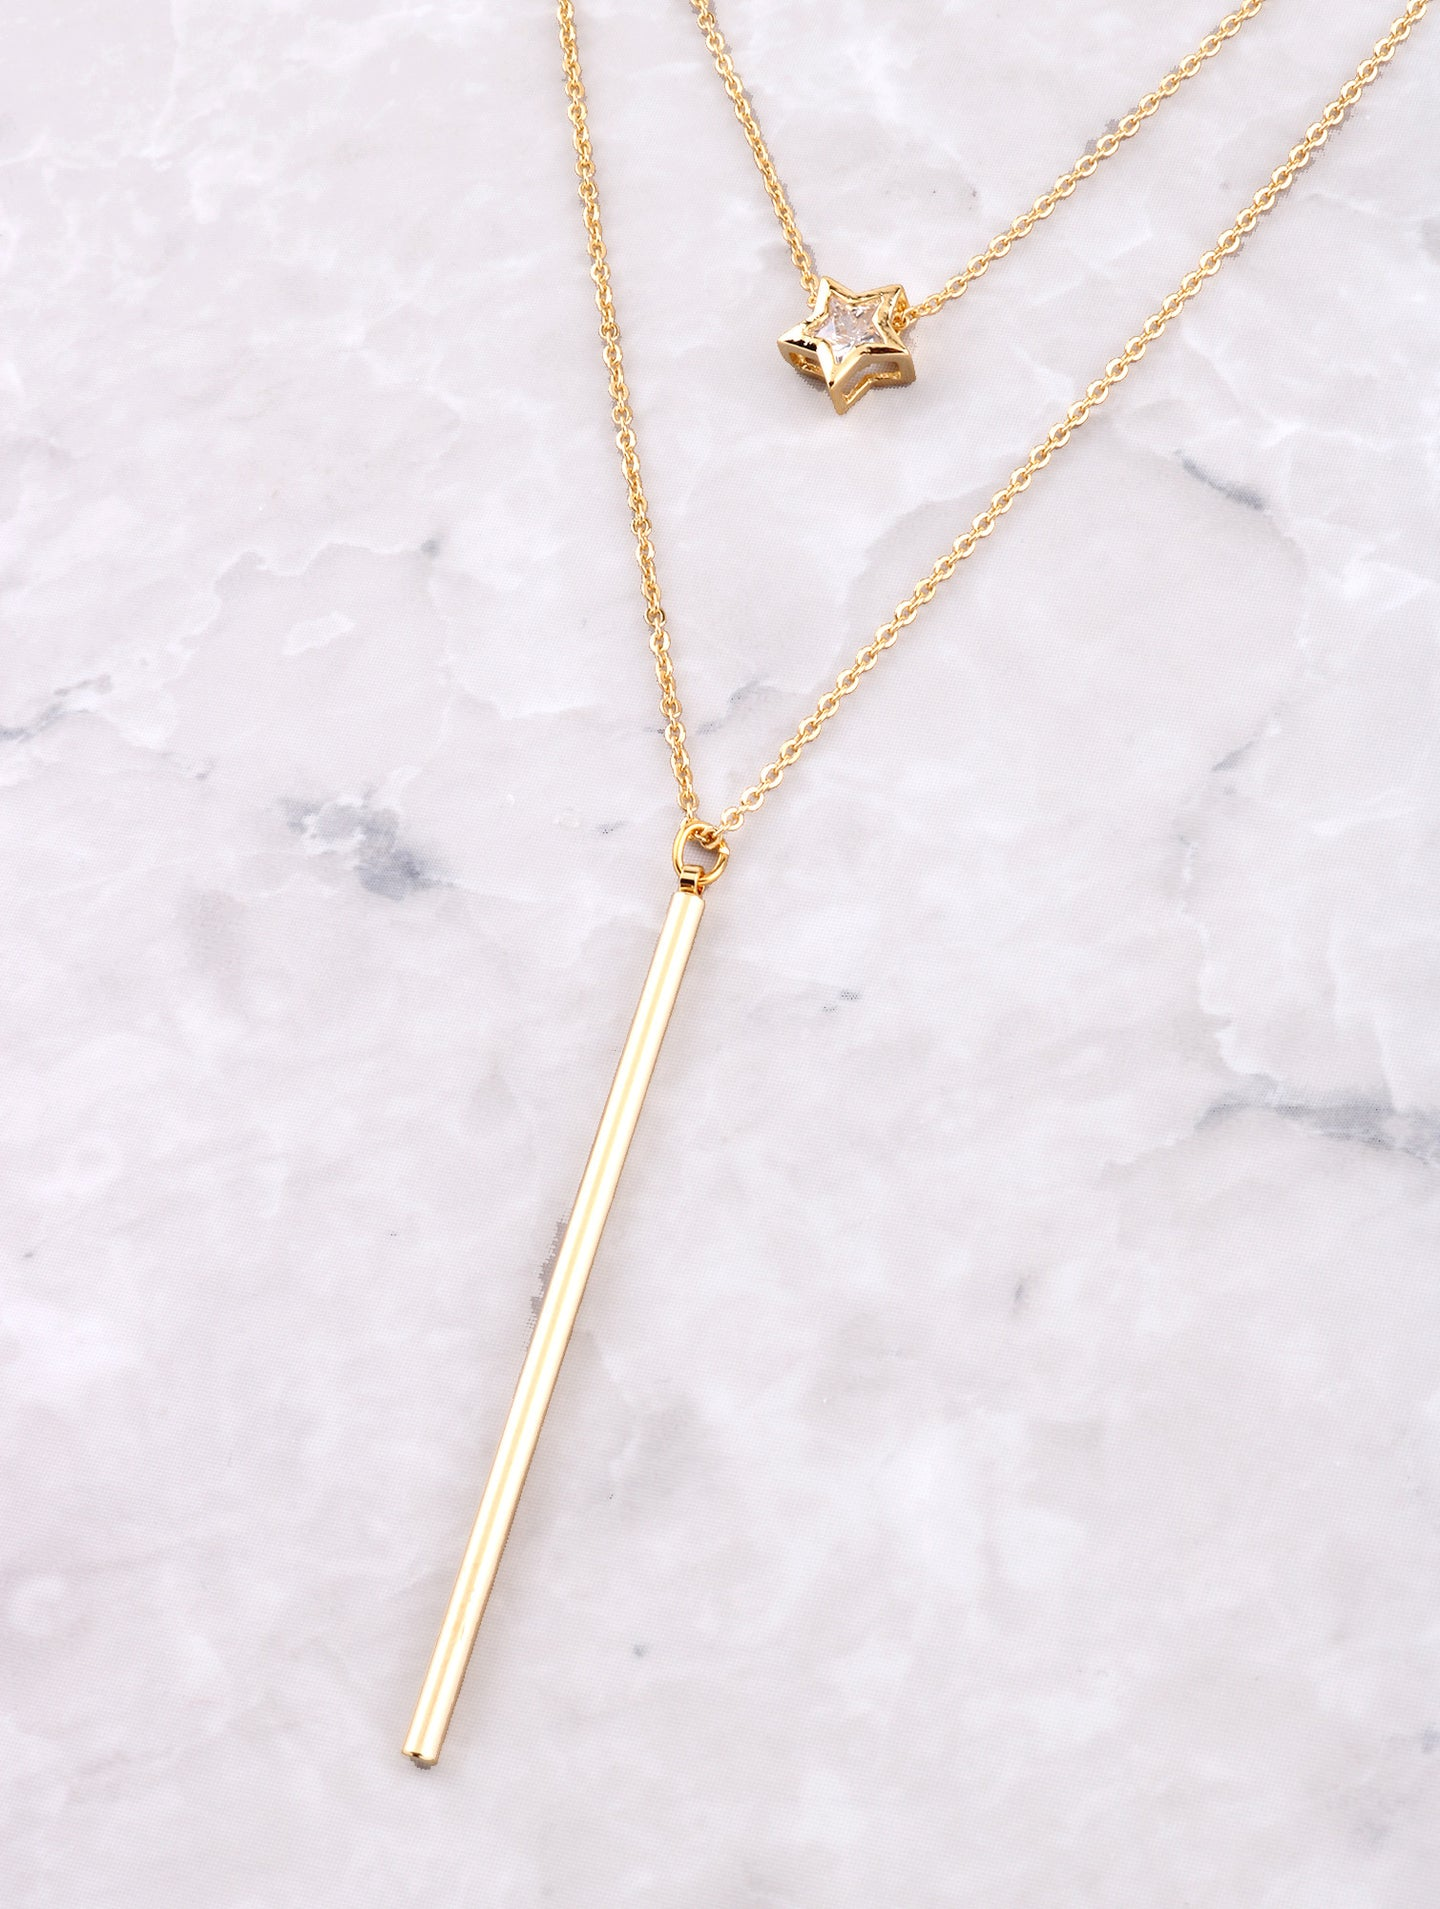 Double Lariat Necklace Anarchy Street Gold - Details